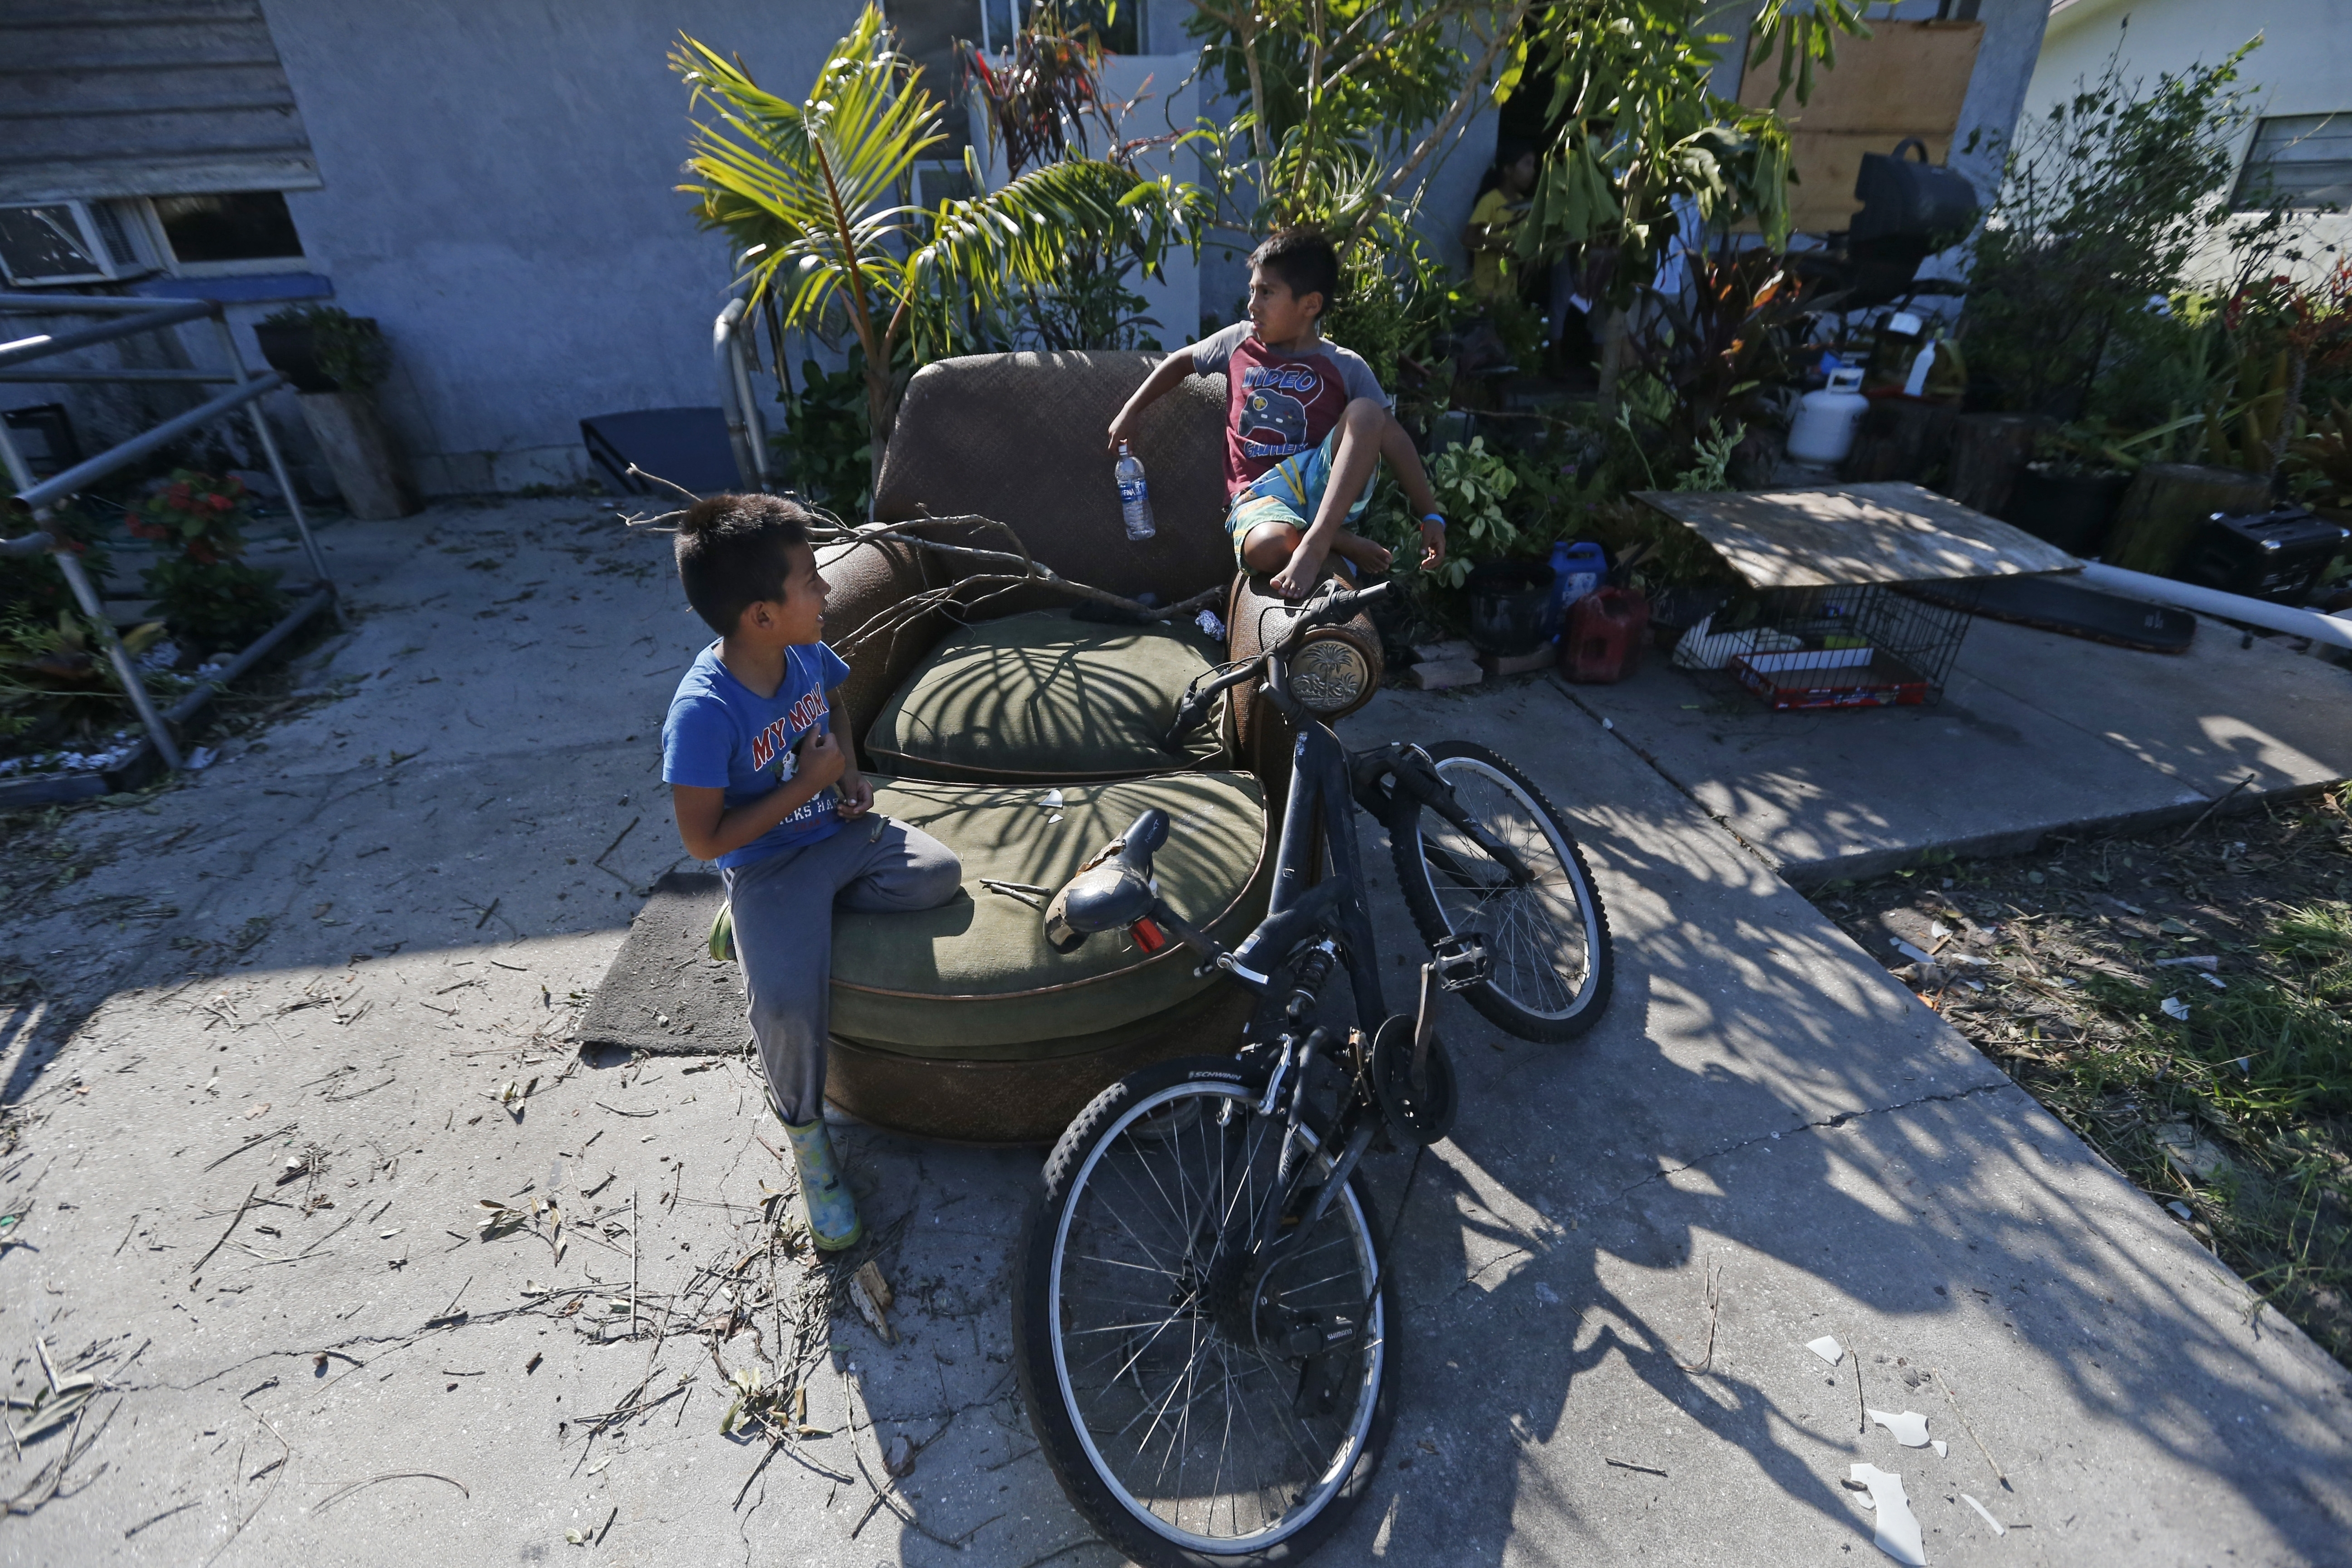 Irma The Poor-8 In this Sept. 12, 2017 photo, Giovani Gaspar, 6, right, and his brother, Isaac, 5, play on a chair outside their home, in the aftermath of Hurricane Irma, in Immokalee, Fla. Their father spent $600 getting ready for Irma, the equivalent of two weeks pay. (AP Photo/Gerald Herbert)